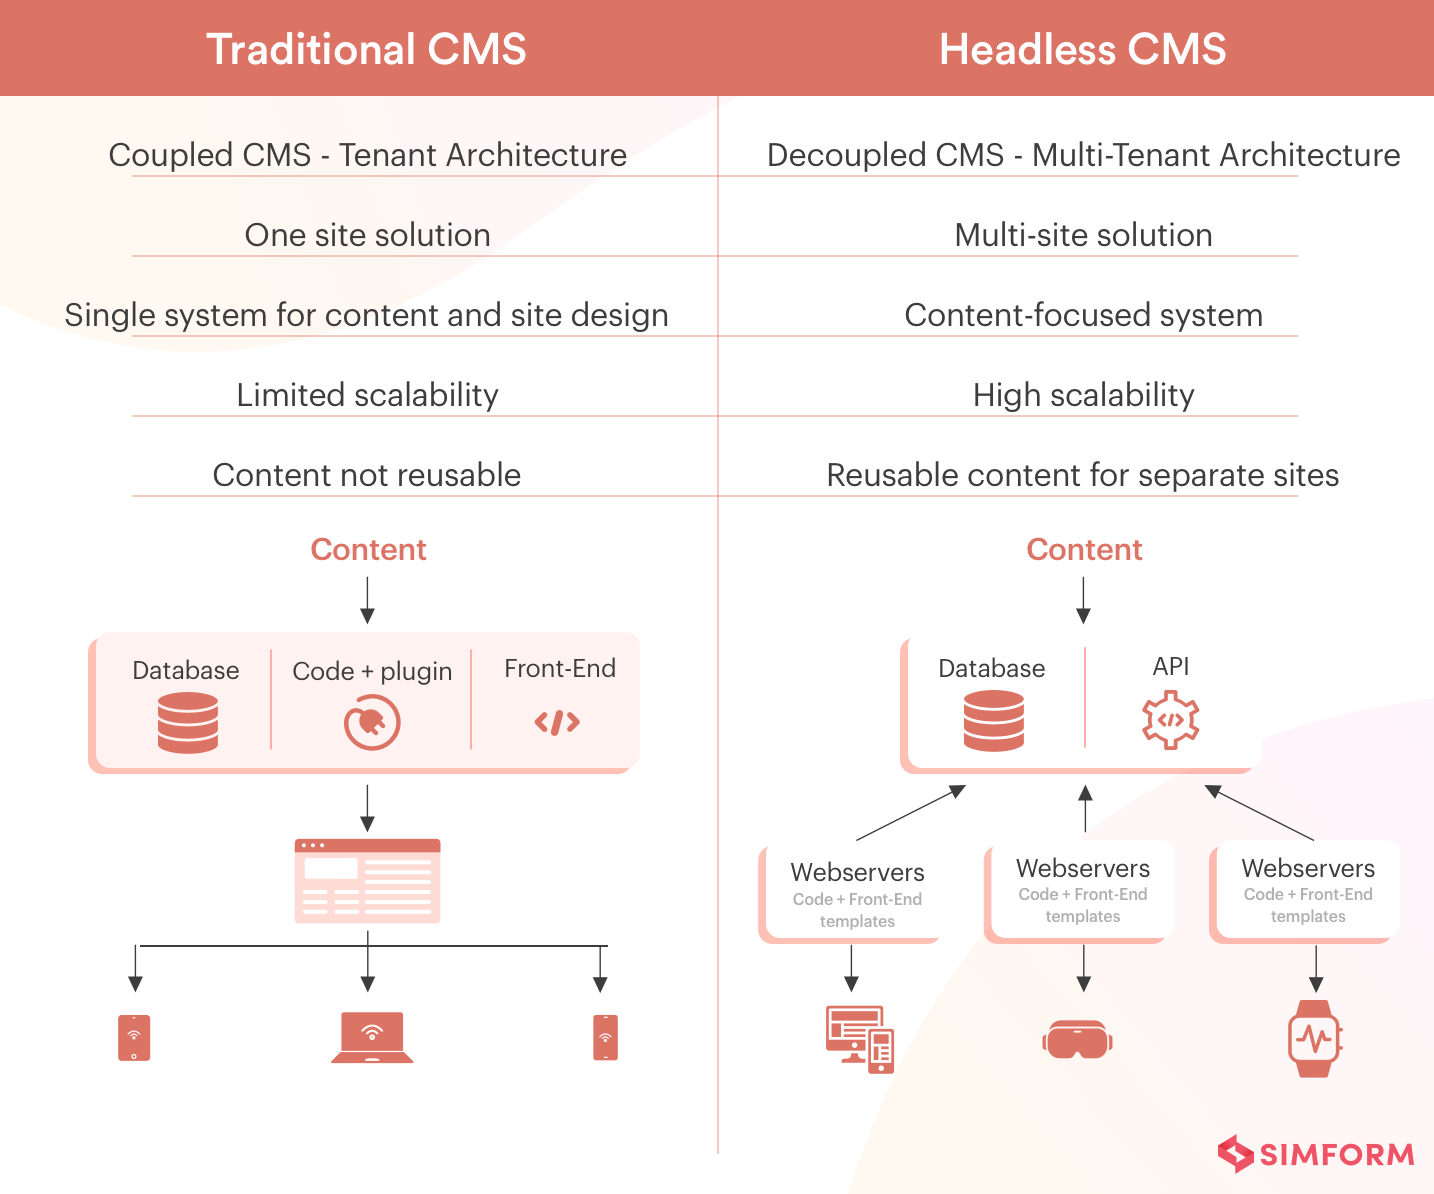 Features of traditional vs headless CMS